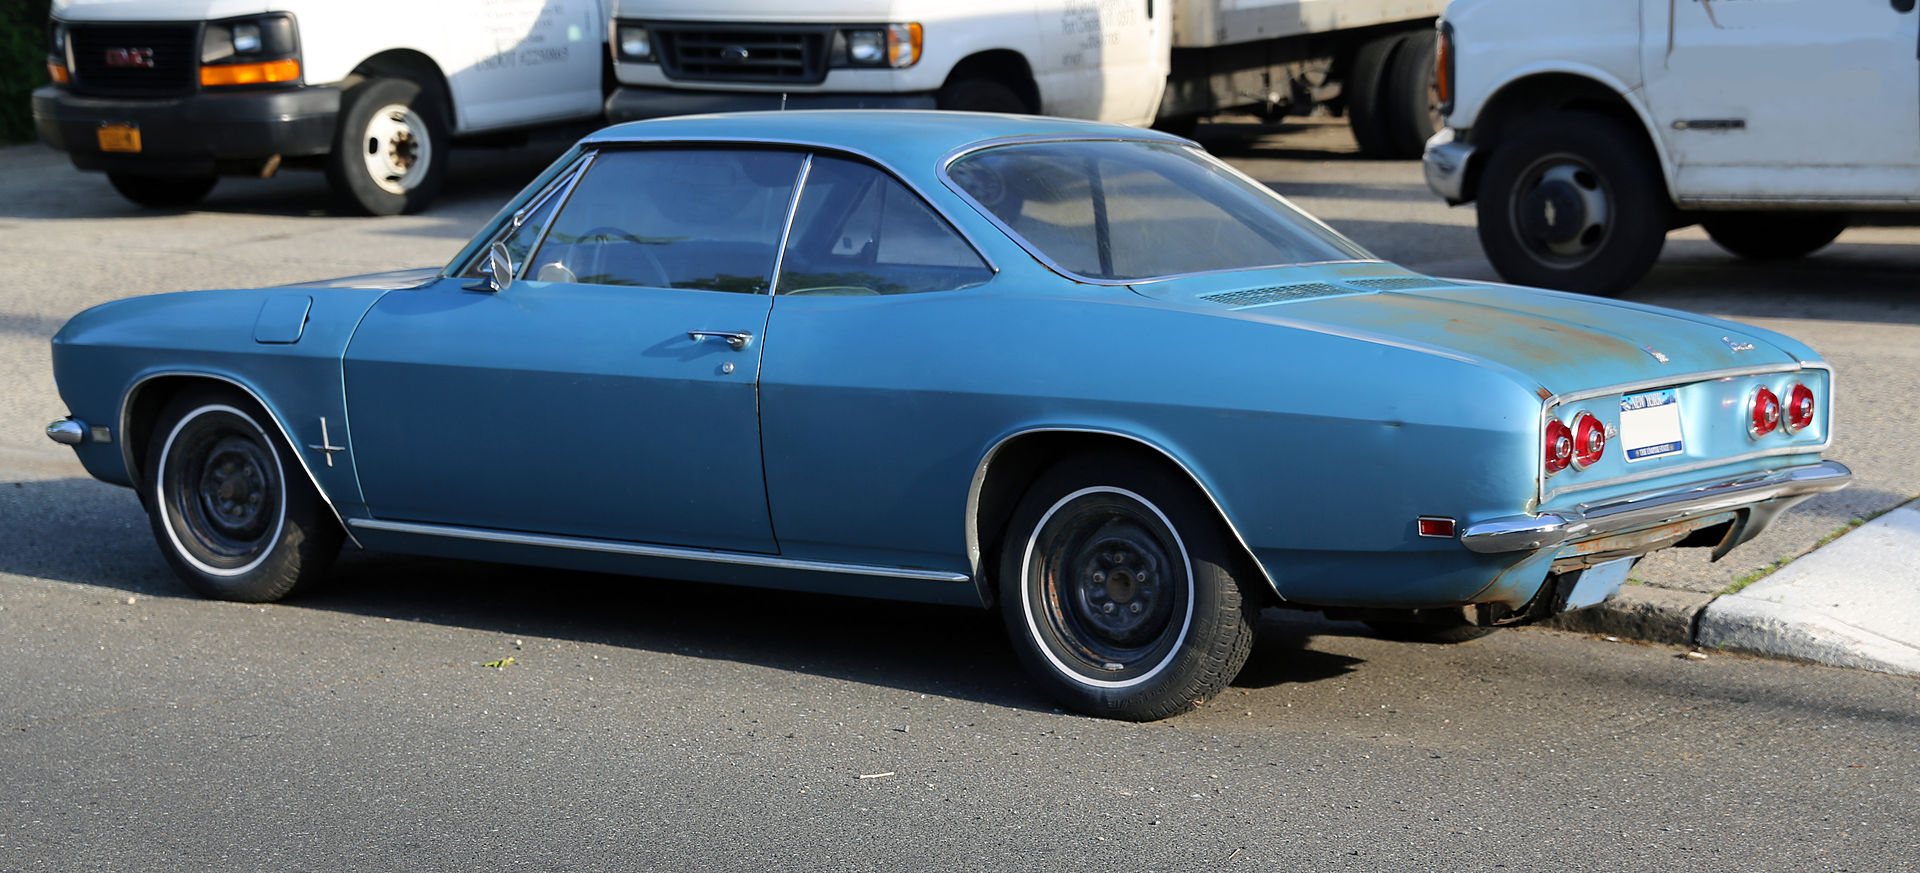 1968_Chevrolet_Corvair_110_coupe_rear